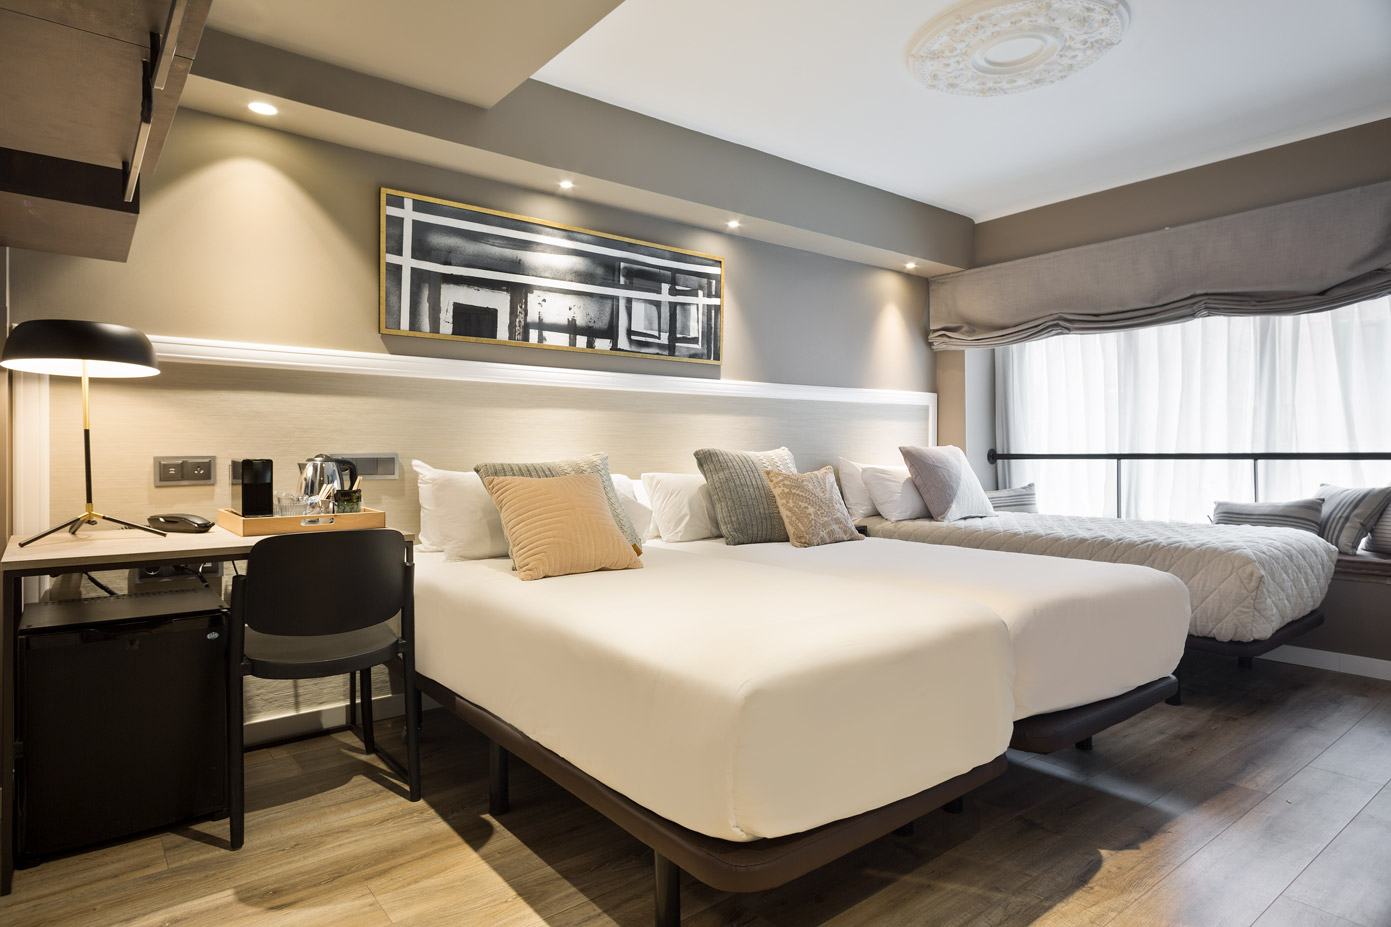 HOTEL_ACTA_SPLENDID_TRIPLE_SUPERIOR_01